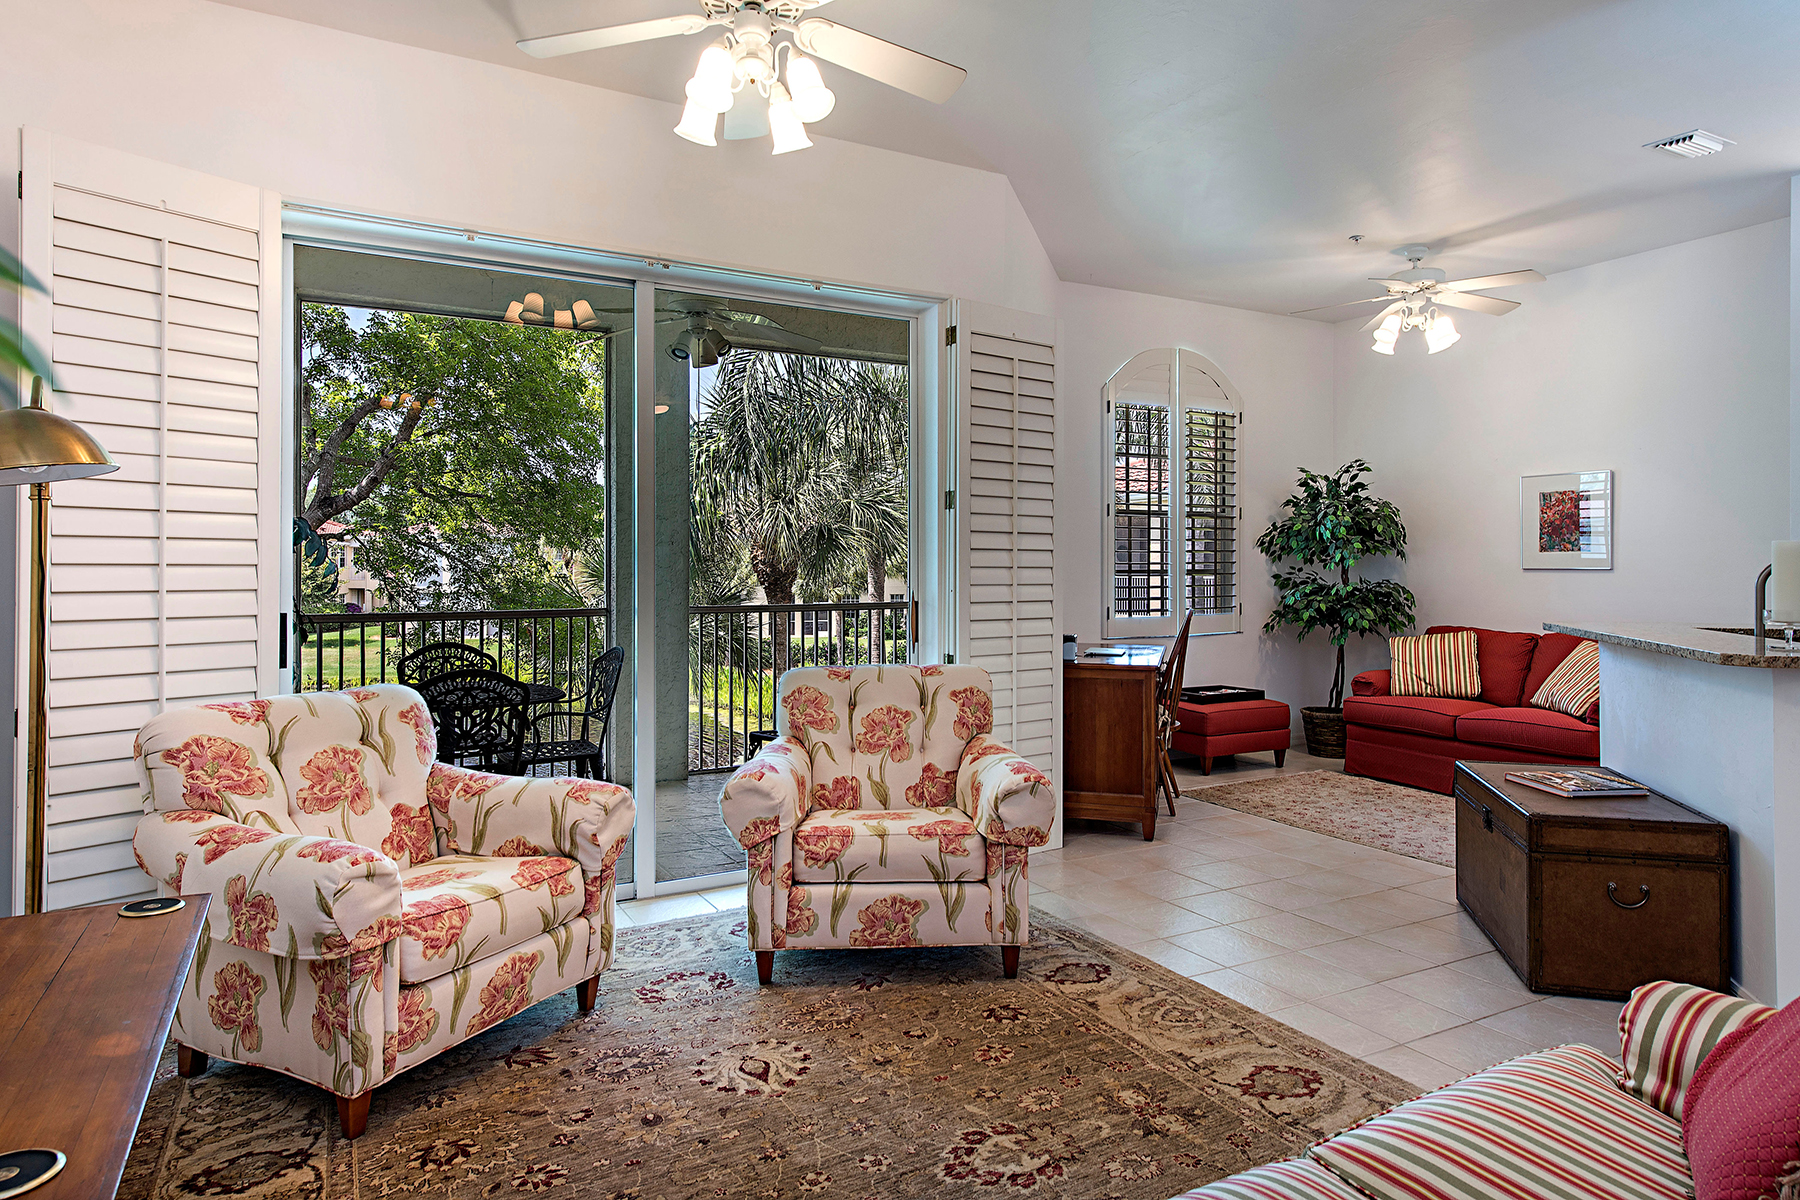 Condominium for Sale at PELICAN BAY - L'AMBIANCE 900 Lambiance Cir 9-203 Naples, Florida, 34108 United States